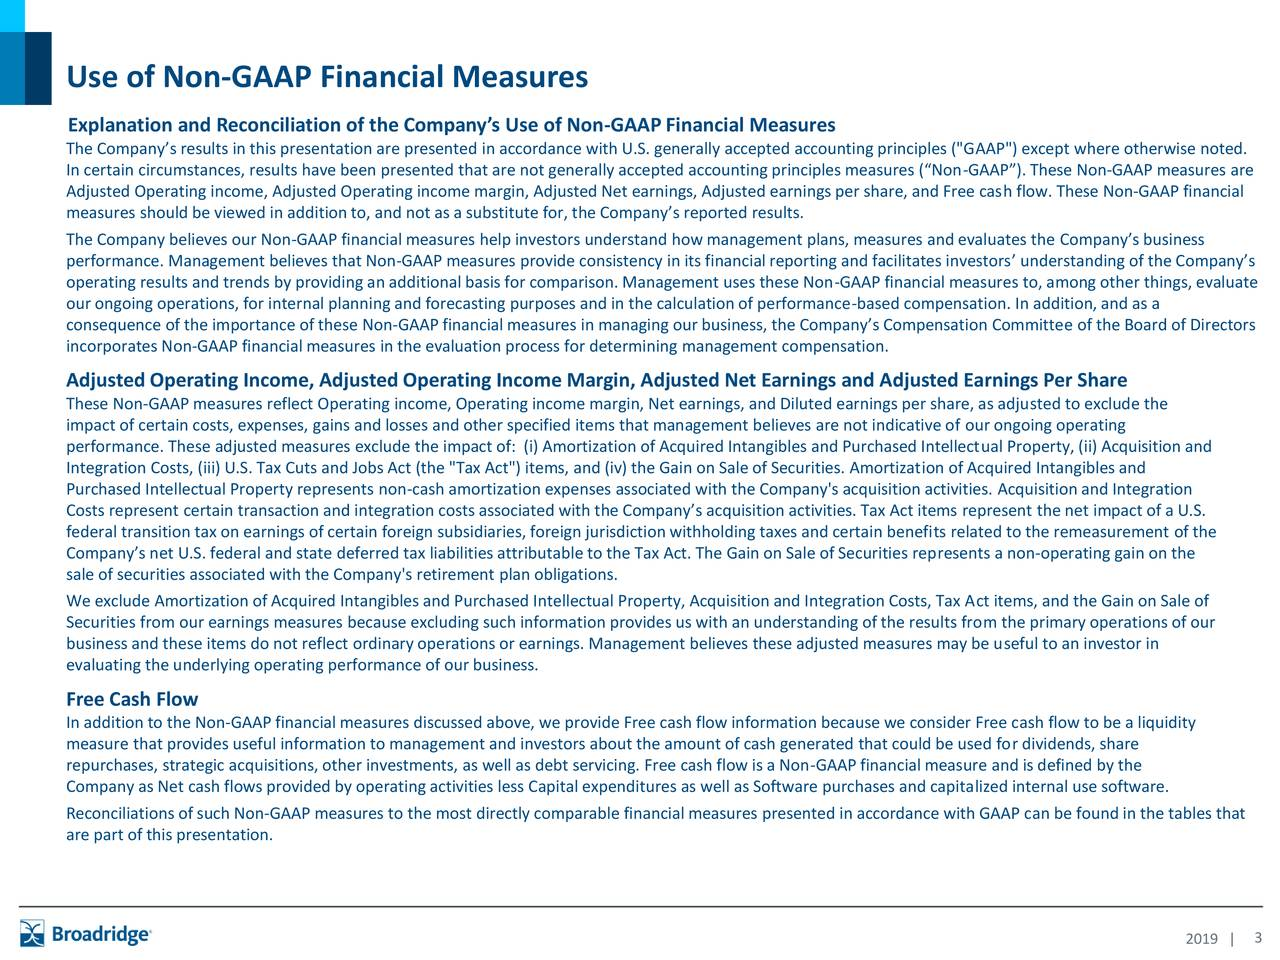 "Explanation and Reconciliation of the Company's Use of Non-GAAPFinancial Measures The Company's results in this presentation are presented in accordance with U.S. generally accepted accounting principles (""GAAP"") except where otherwise noted. In certain circumstances, results have been presented that are not generally accepted accounting principles measures (""Non-GAAP""). These Non-GAAP measures are Adjusted Operating income, Adjusted Operating income margin, Adjusted Net earnings, Adjusted earnings per share, and Free cash flow. These Non-GAAP financial measures should be viewed in addition to, and not as a substitute for, the Company's reported results. The Company believes our Non-GAAP financial measures help investors understand how management plans, measures and evaluates the Company's business performance. Management believes that Non-GAAP measures provide consistency in its financial reporting and facilitates investors' understanding of the Company's operating results and trends by providing an additional basis for comparison. Management uses these Non-GAAP financial measures to, among other things, evaluate our ongoing operations, for internal planning and forecasting purposes and in the calculation of performance-based compensation. In addition, and as a consequence of the importance of these Non-GAAP financial measures in managing our business, the Company's Compensation Committee of the Board of Directors incorporates Non-GAAP financial measures in the evaluation process for determining management compensation. Adjusted Operating Income, Adjusted Operating Income Margin, Adjusted Net Earnings and Adjusted Earnings Per Share These Non-GAAP measures reflect Operating income, Operating income margin, Net earnings, and Diluted earnings per share, as adjusted to exclude the impact of certain costs, expenses, gains and losses and other specified items that management believes are not indicative of our ongoing operating performance. These adjusted measures exclude the impact of: (i) Amortization of Acquired Intangibles and Purchased Intellectual Property, (ii) Acquisition and Integration Costs, (iii) U.S. Tax Cuts and Jobs Act (the ""Tax Act"") items, and (iv) the Gain on Sale of Securities. Amortization of Acquired Intangibles and Purchased Intellectual Property represents non-cash amortization expenses associated with the Company's acquisition activities. Acquisition and Integration Costs represent certain transaction and integration costs associated with the Company's acquisition activities. Tax Act items represent the net impact of a U.S. federal transition tax on earnings of certain foreign subsidiaries, foreign jurisdiction withholding taxes and certain benefits related to the remeasurement of the Company's net U.S. federal and state deferred tax liabilities attributable to the Tax Act. The Gain on Sale of Securities represents a non-operating gain on the sale of securities associated with the Company's retirement plan obligations. We exclude Amortization of Acquired Intangibles and Purchased Intellectual Property, Acquisition and Integration Costs, Tax Act items, and the Gain on Sale of Securities from our earnings measures because excluding such information provides us with an understanding of the results from the primary operations of our business and these items do not reflect ordinary operations or earnings. Management believes these adjusted measures may be useful to an investor in evaluating the underlying operating performance of our business. Free Cash Flow In addition to the Non-GAAP financial measures discussed above, we provide Free cash flow information because we consider Free cash flow to be a liquidity measure that provides useful information to management and investors about the amount of cash generated that could be used for dividends, share repurchases, strategic acquisitions, other investments, as well as debt servicing. Free cash flow is a Non-GAAP financial measure and is defined by the Company as Net cash flows provided by operating activities less Capital expenditures as well as Software purchases and capitalized internal use software. Reconciliations of such Non-GAAP measures to the most directly comparable financial measures presented in accordance with GAAP can be found in the tables that are part of this presentation. 2019 